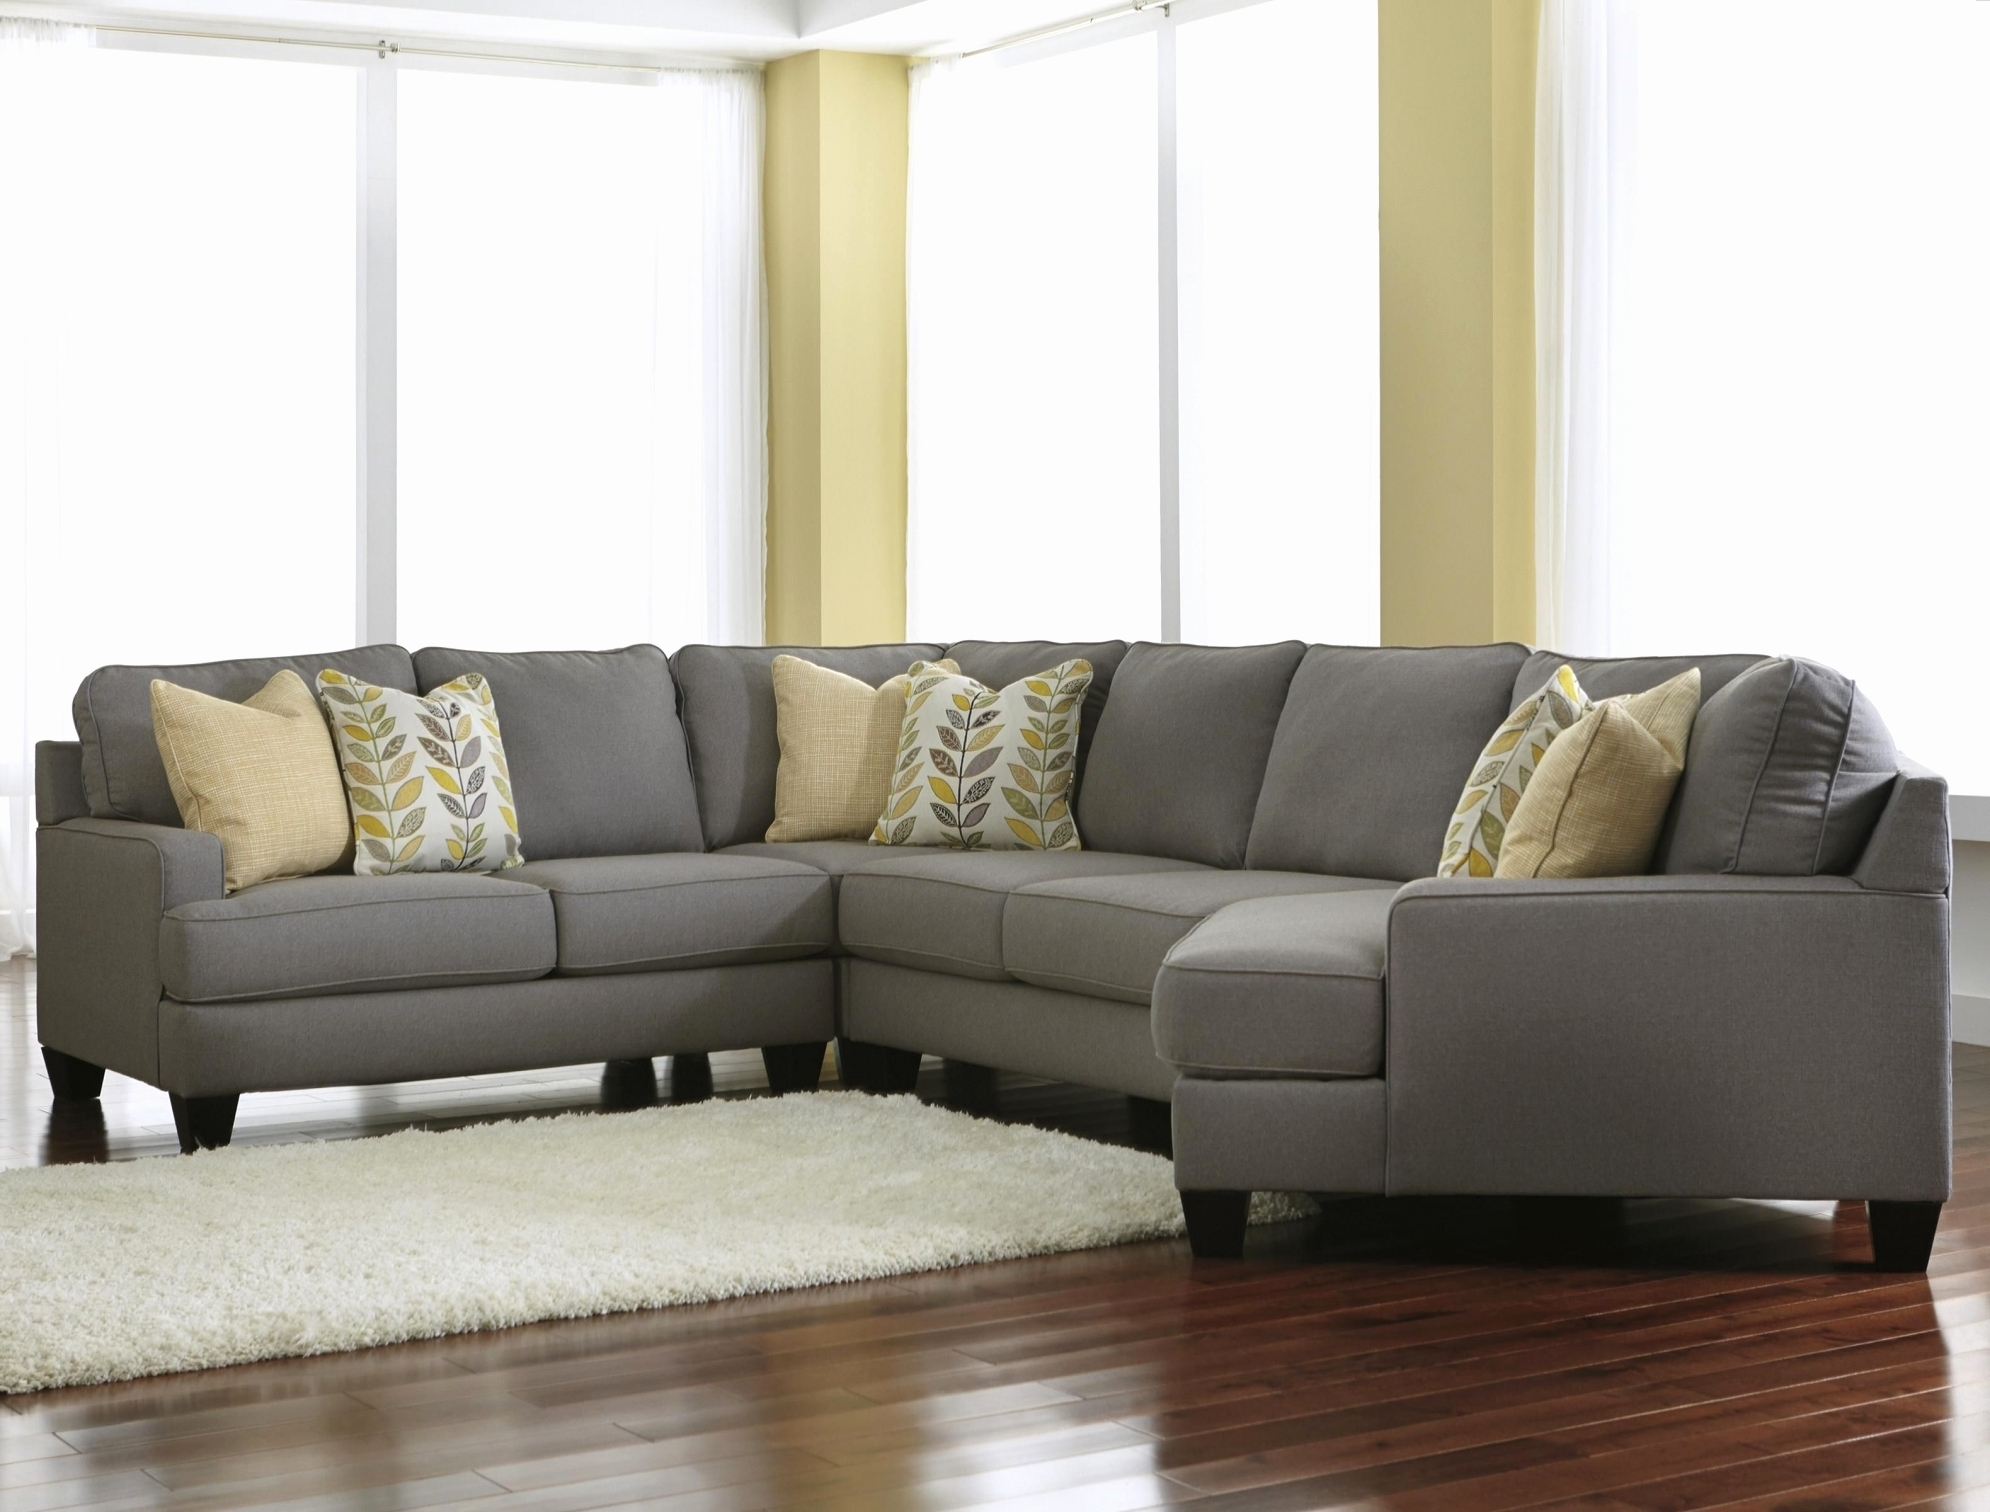 32 Lovely Sectional Sofas Clearance Photos - Sectional Sofa Design for Most Recently Released Nashua Nh Sectional Sofas